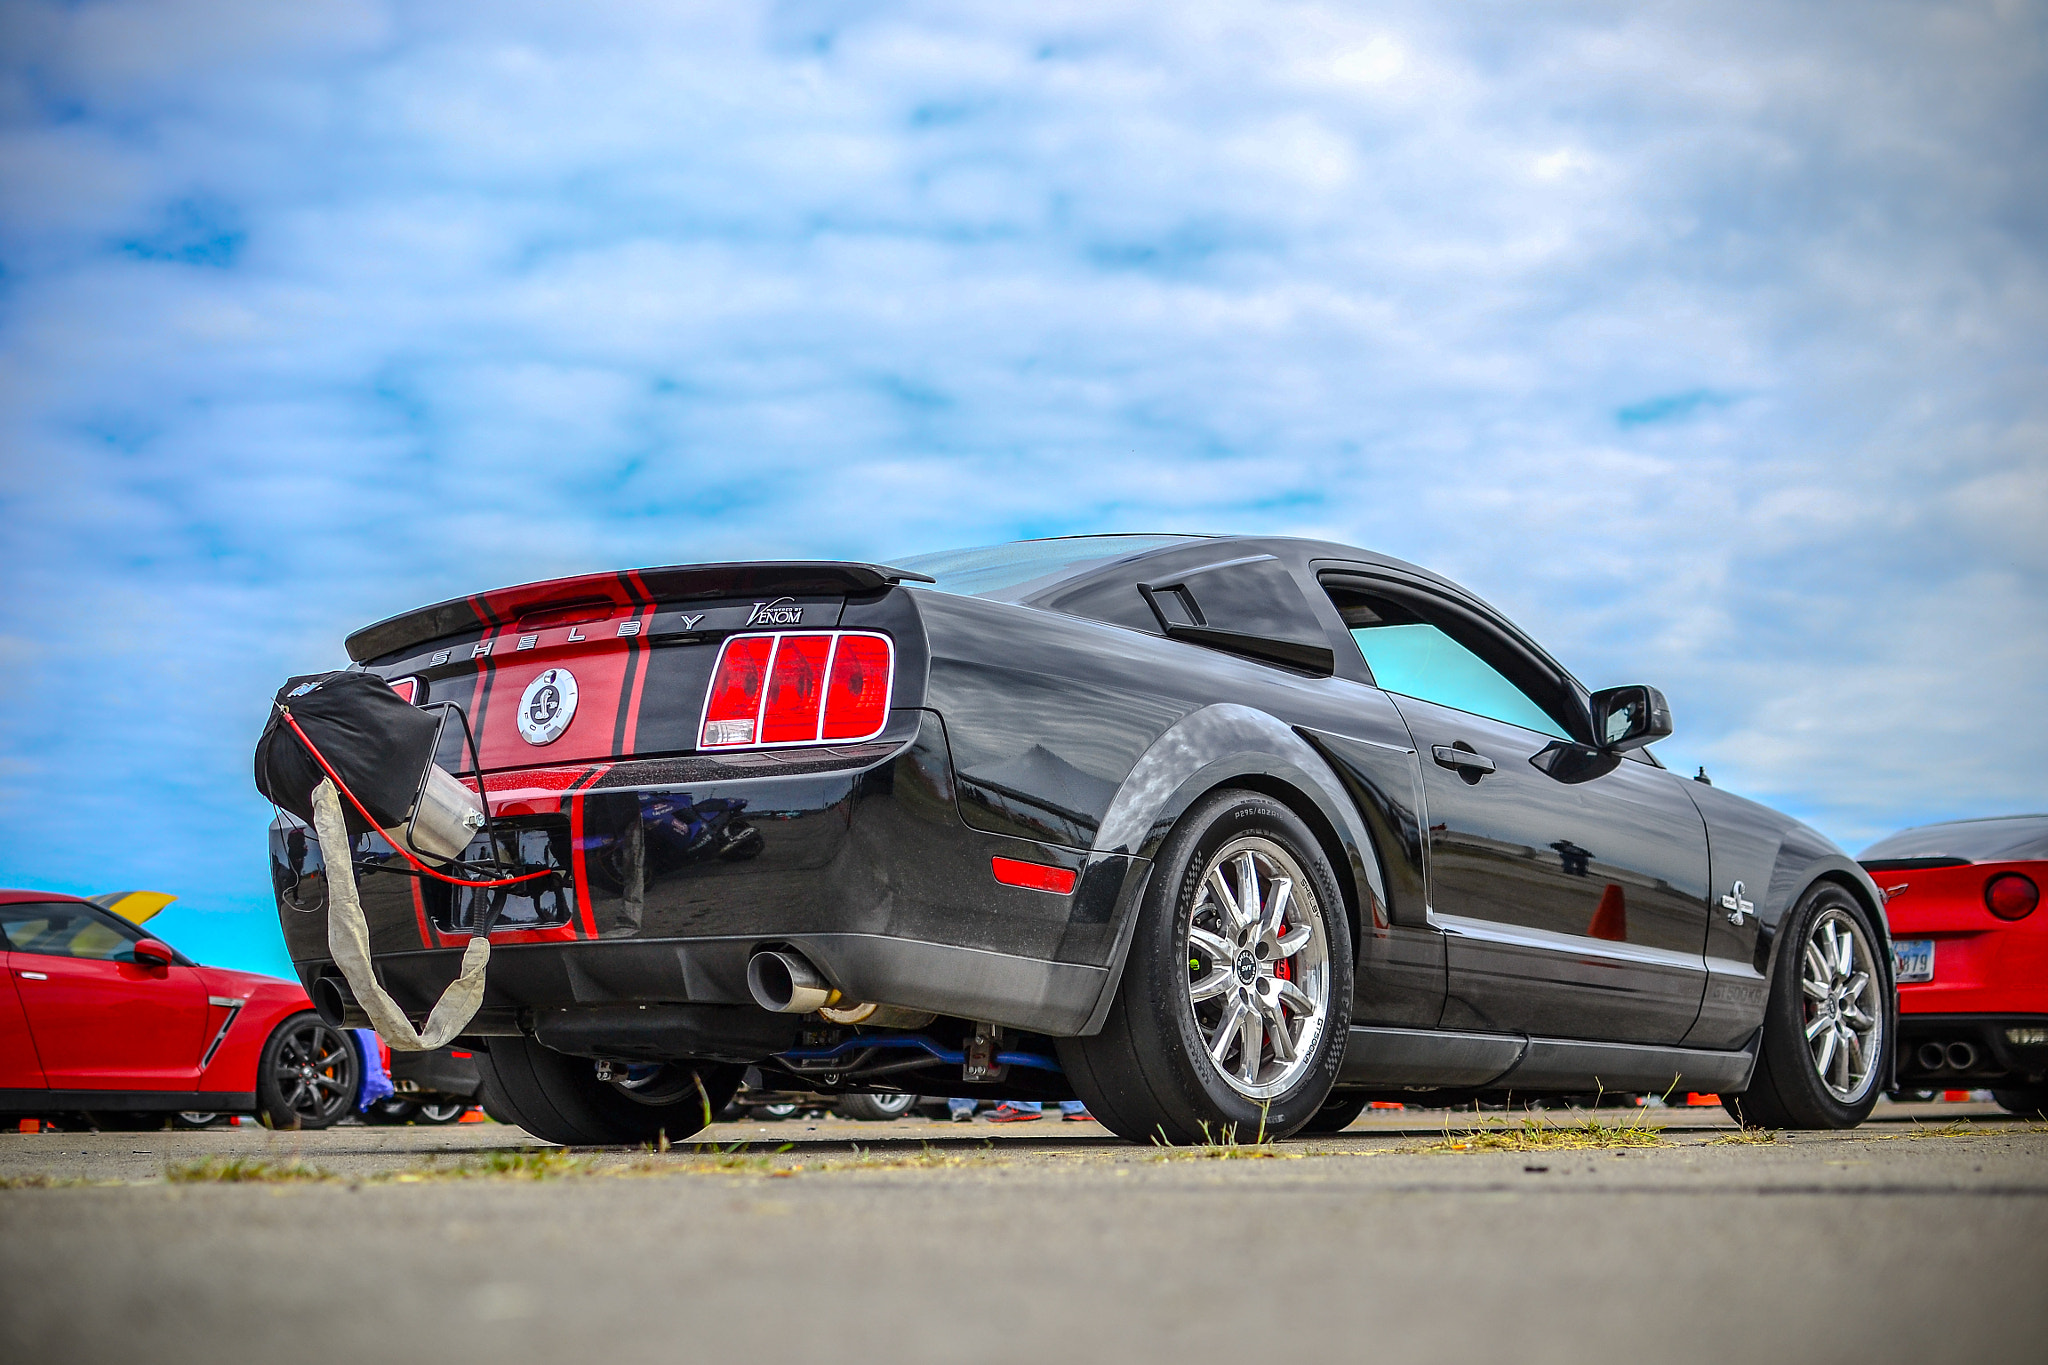 Photograph One Fast Shelby by Ryan Garza on 500px